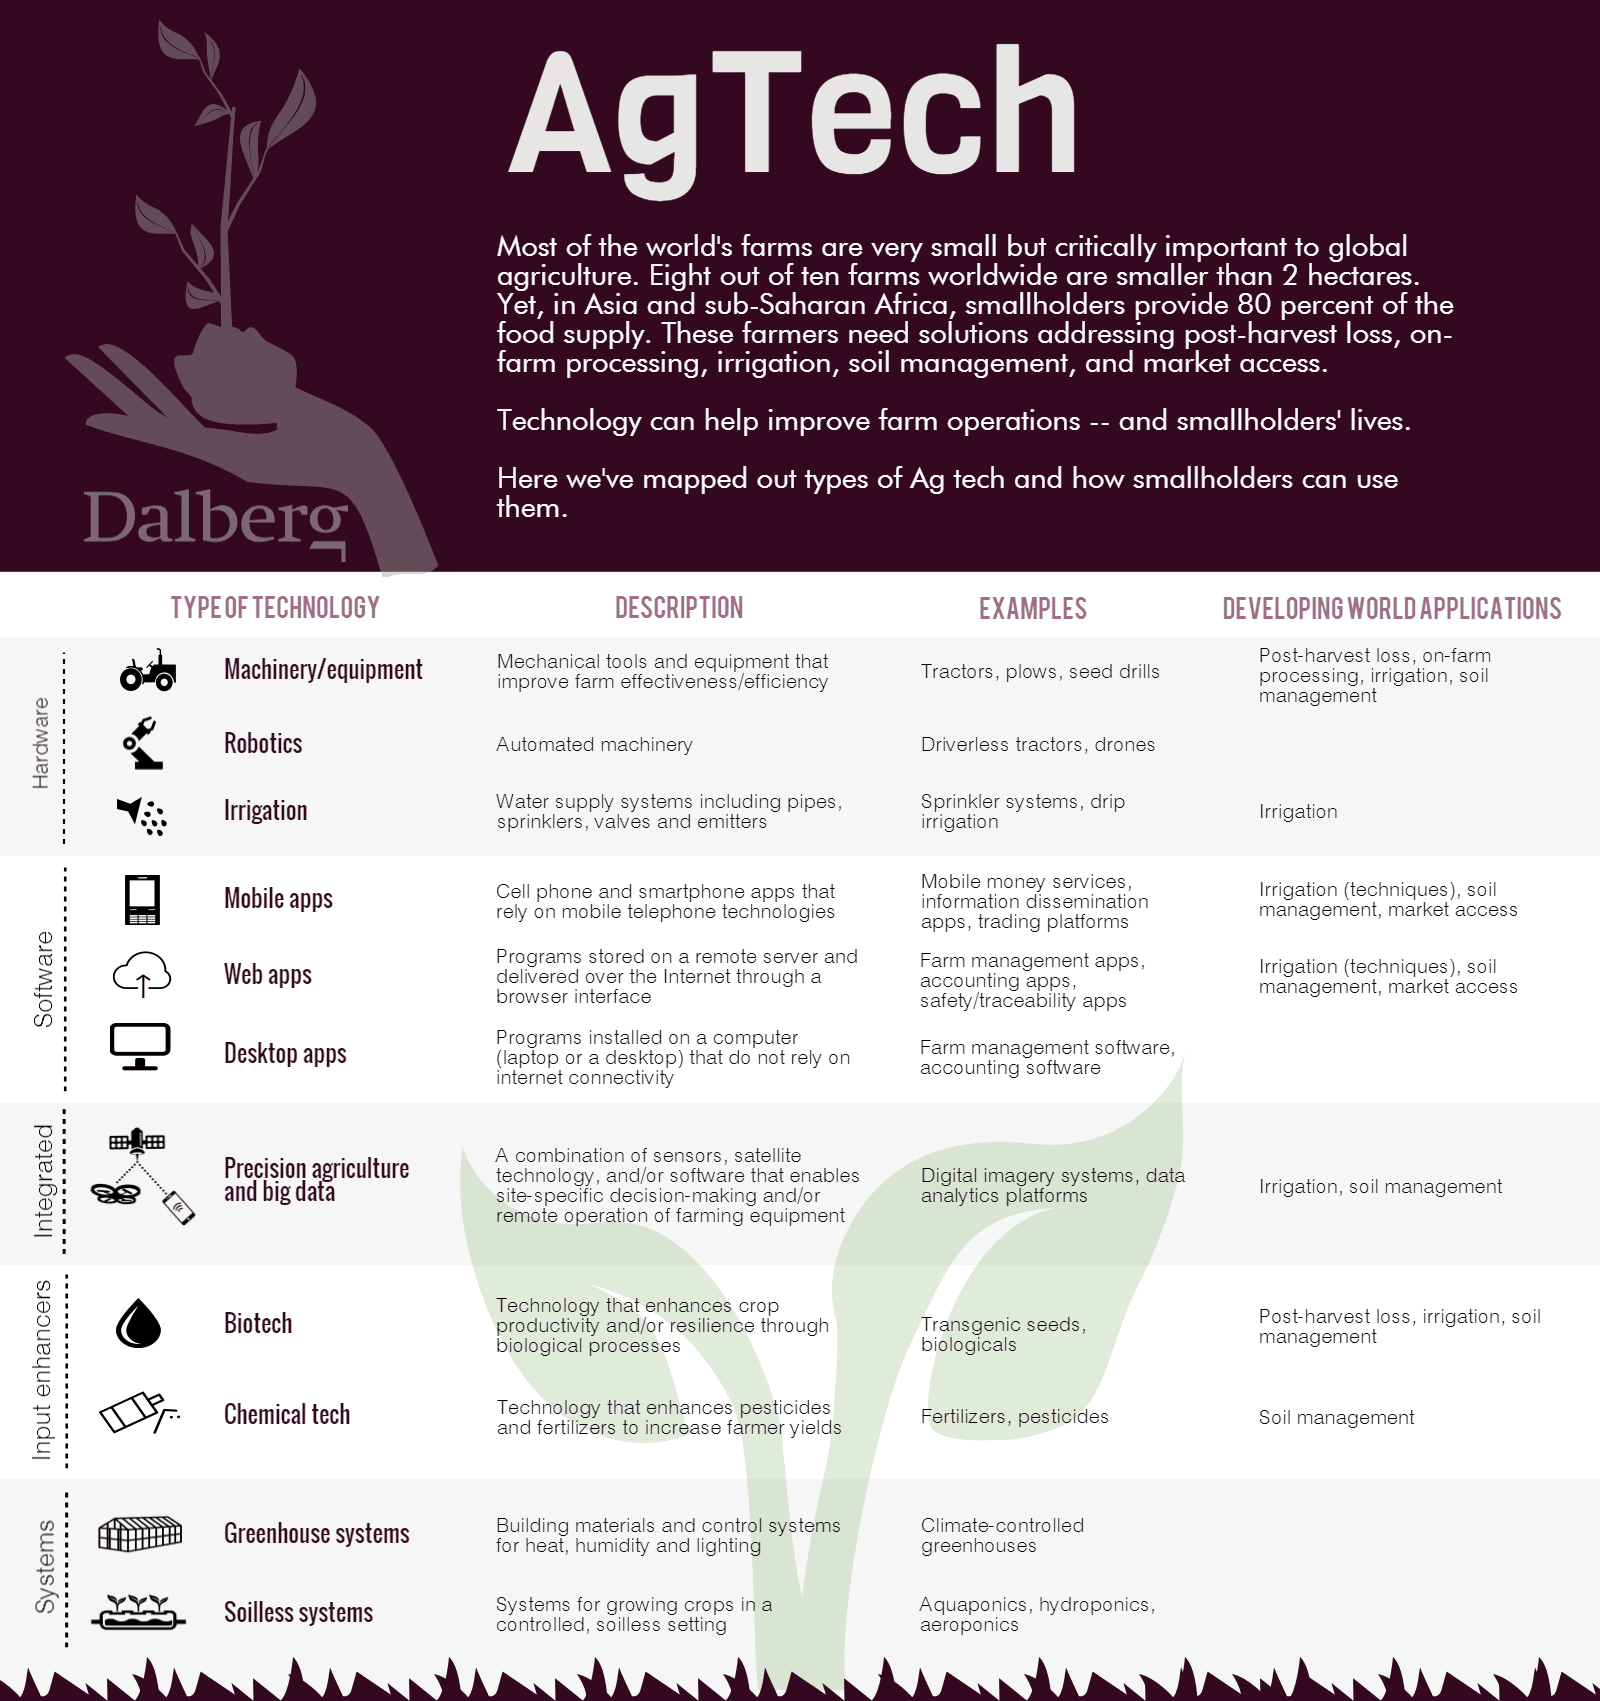 agtech-for-the-_13443037_14eb52547d9cb61c76defe4df8769e9ed281afed (1)